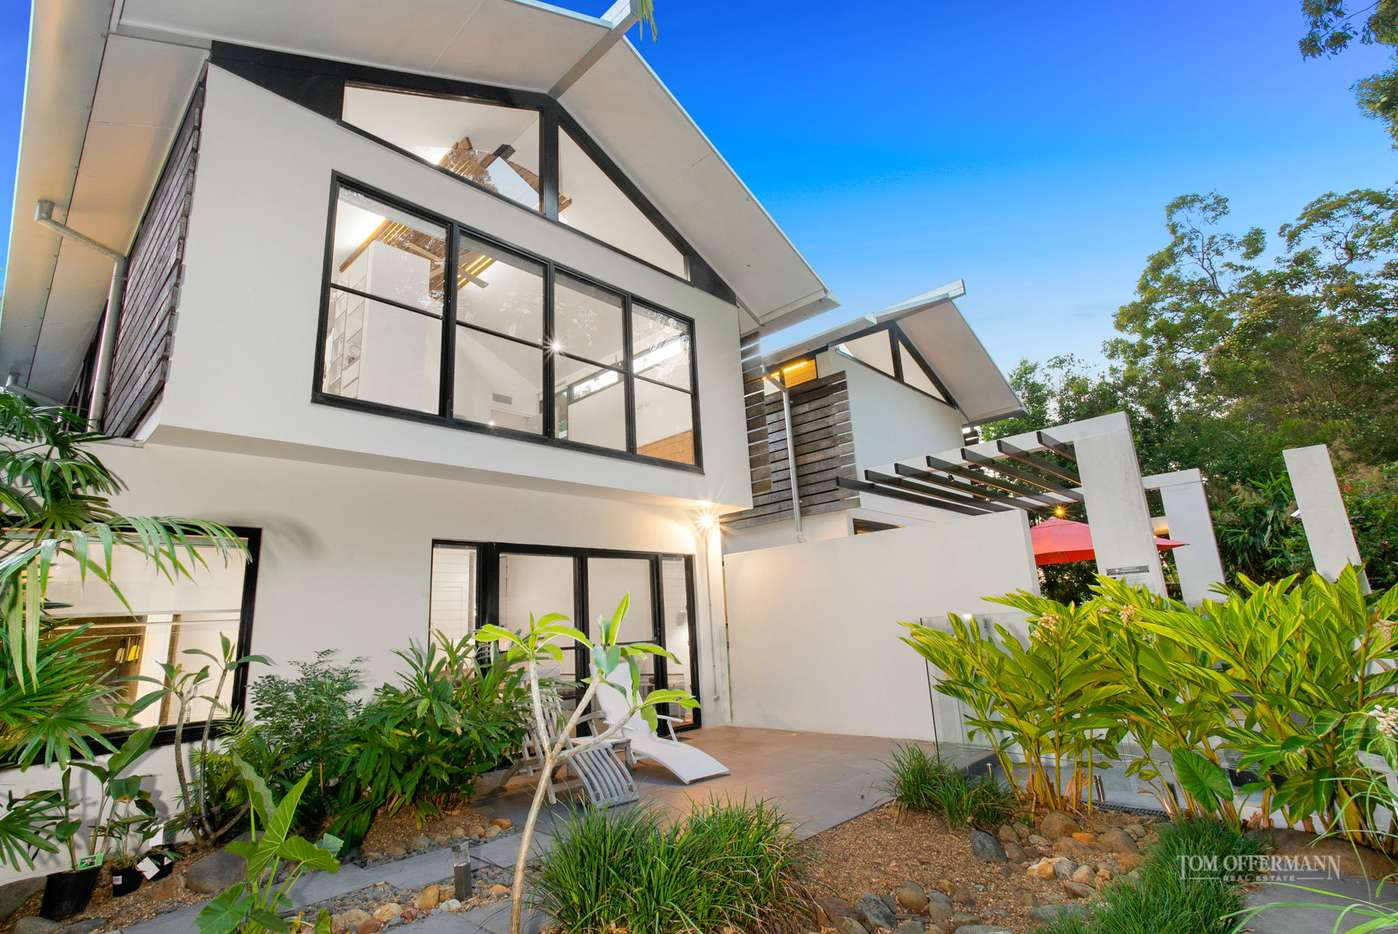 Main view of Homely house listing, 13 Wild Apple Court, Noosa Heads, QLD 4567